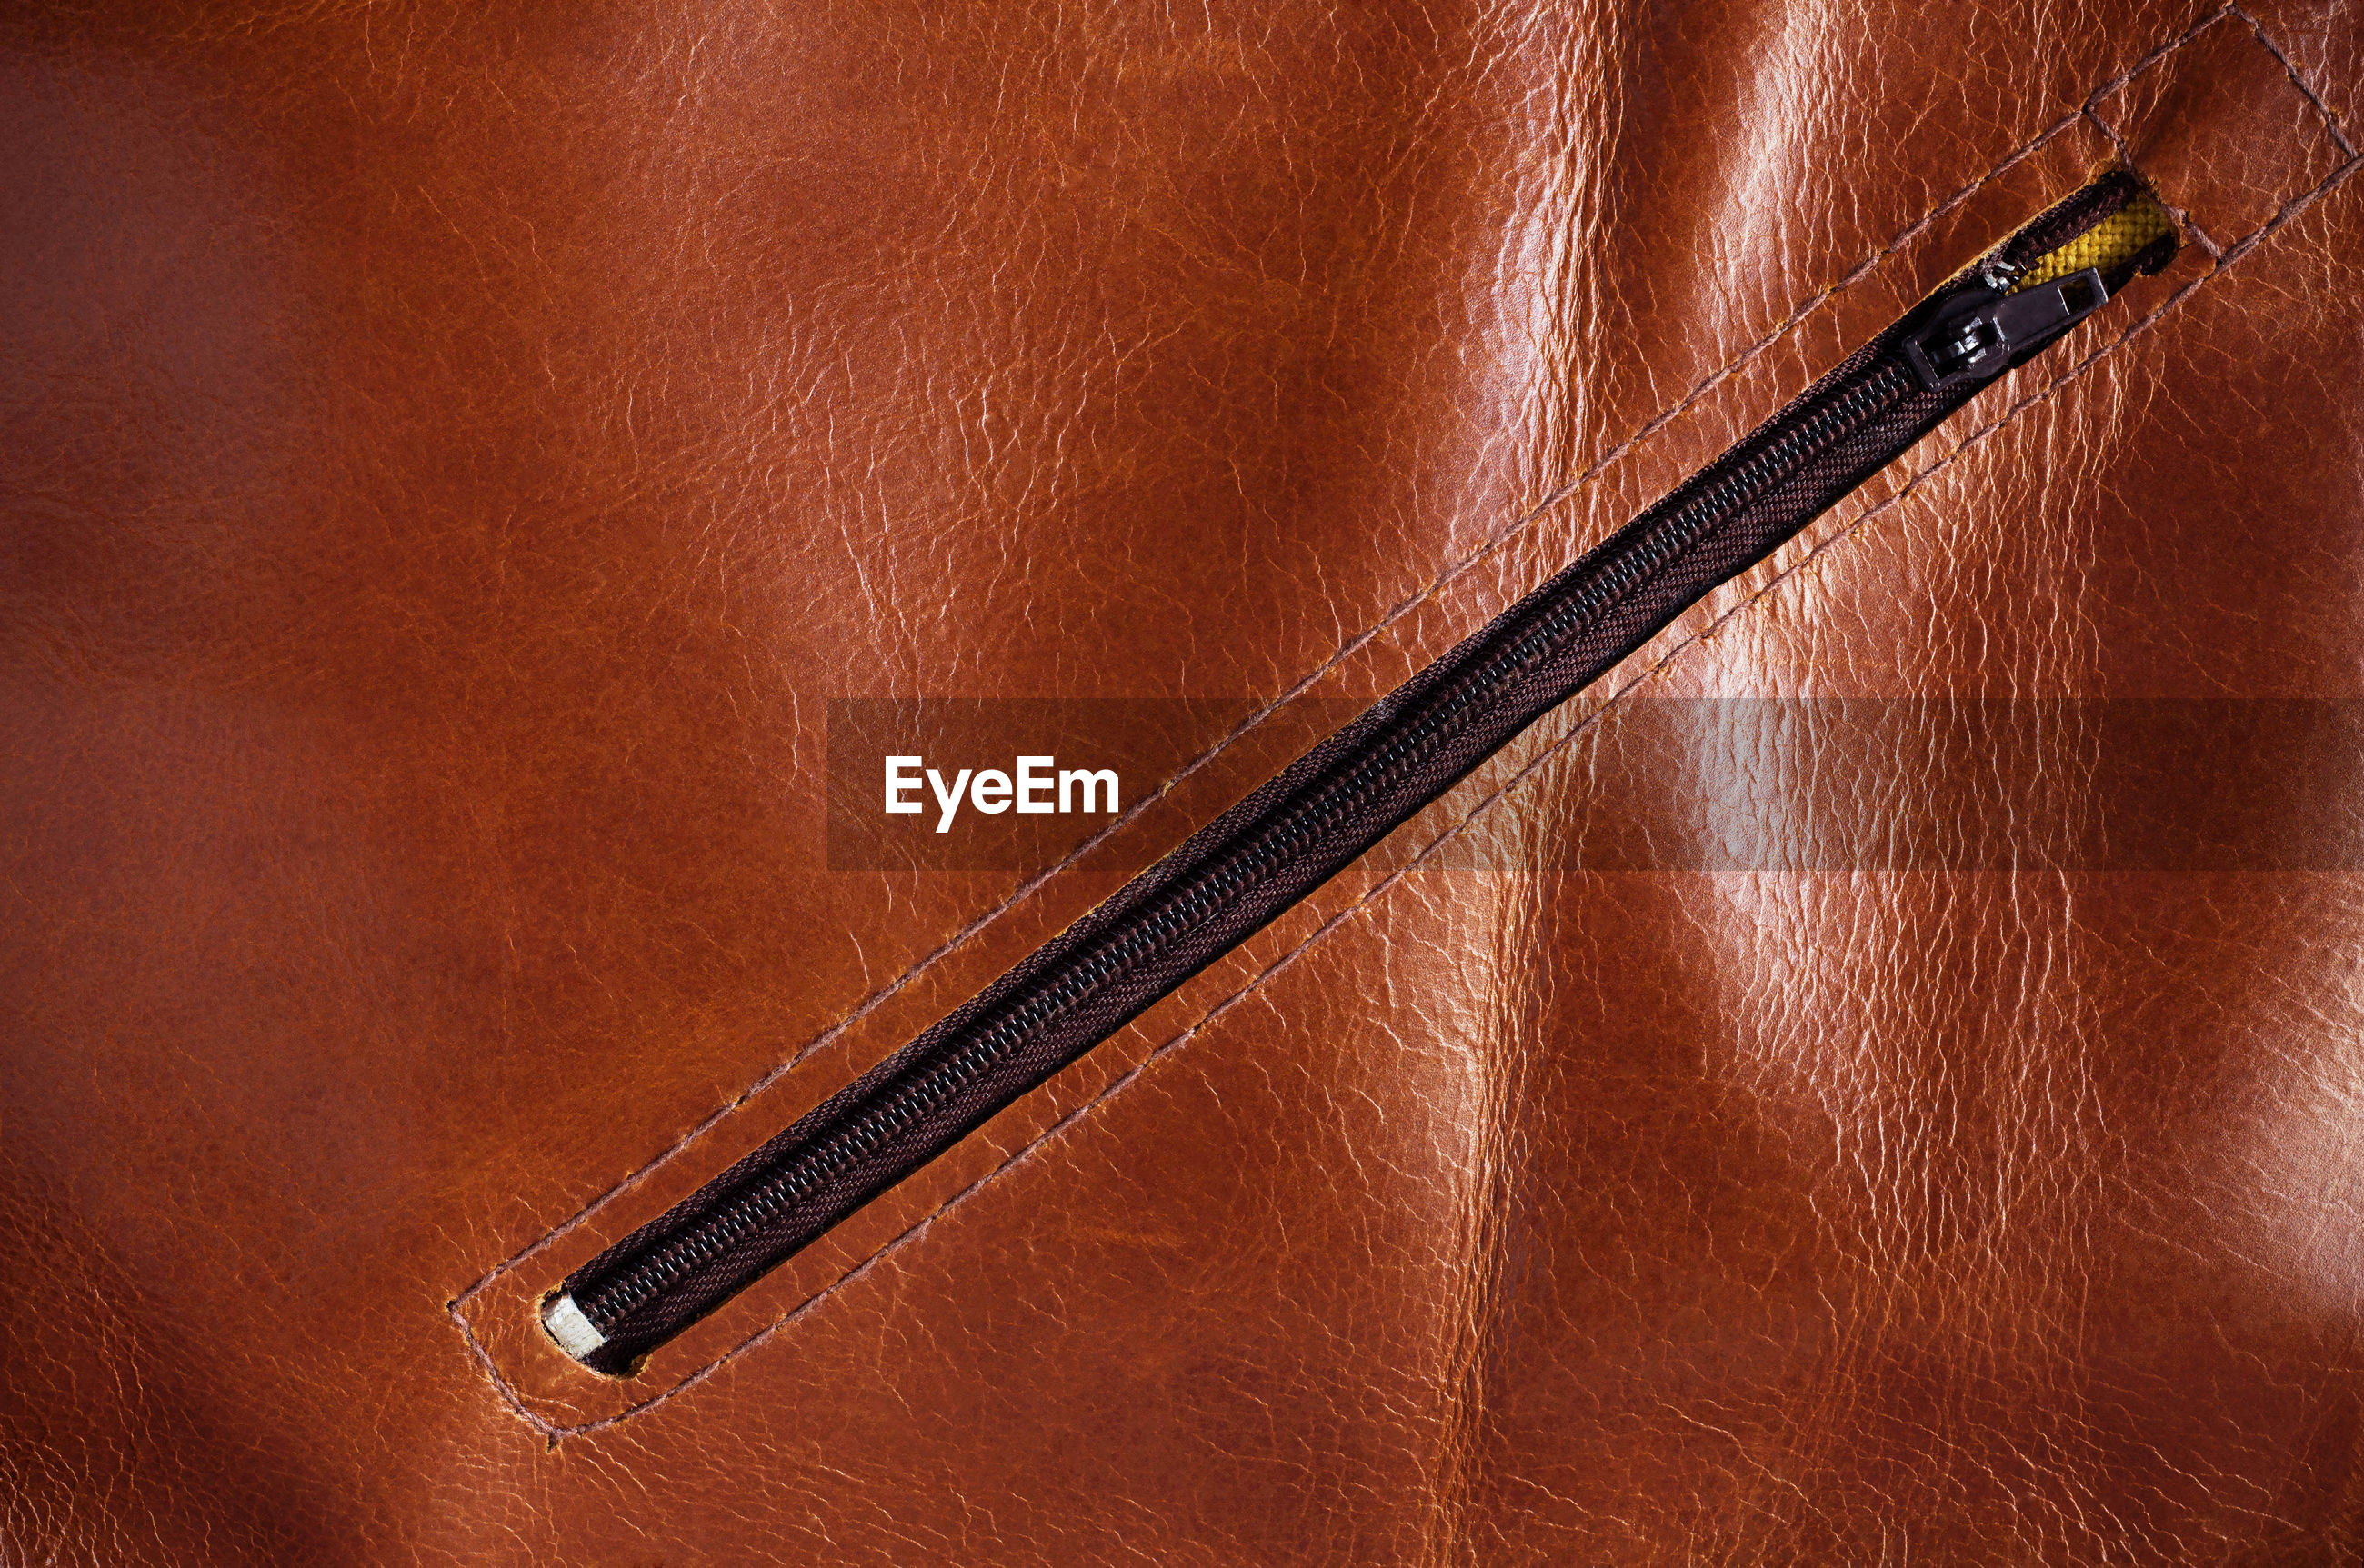 Full frame shot of brown leather with zipper